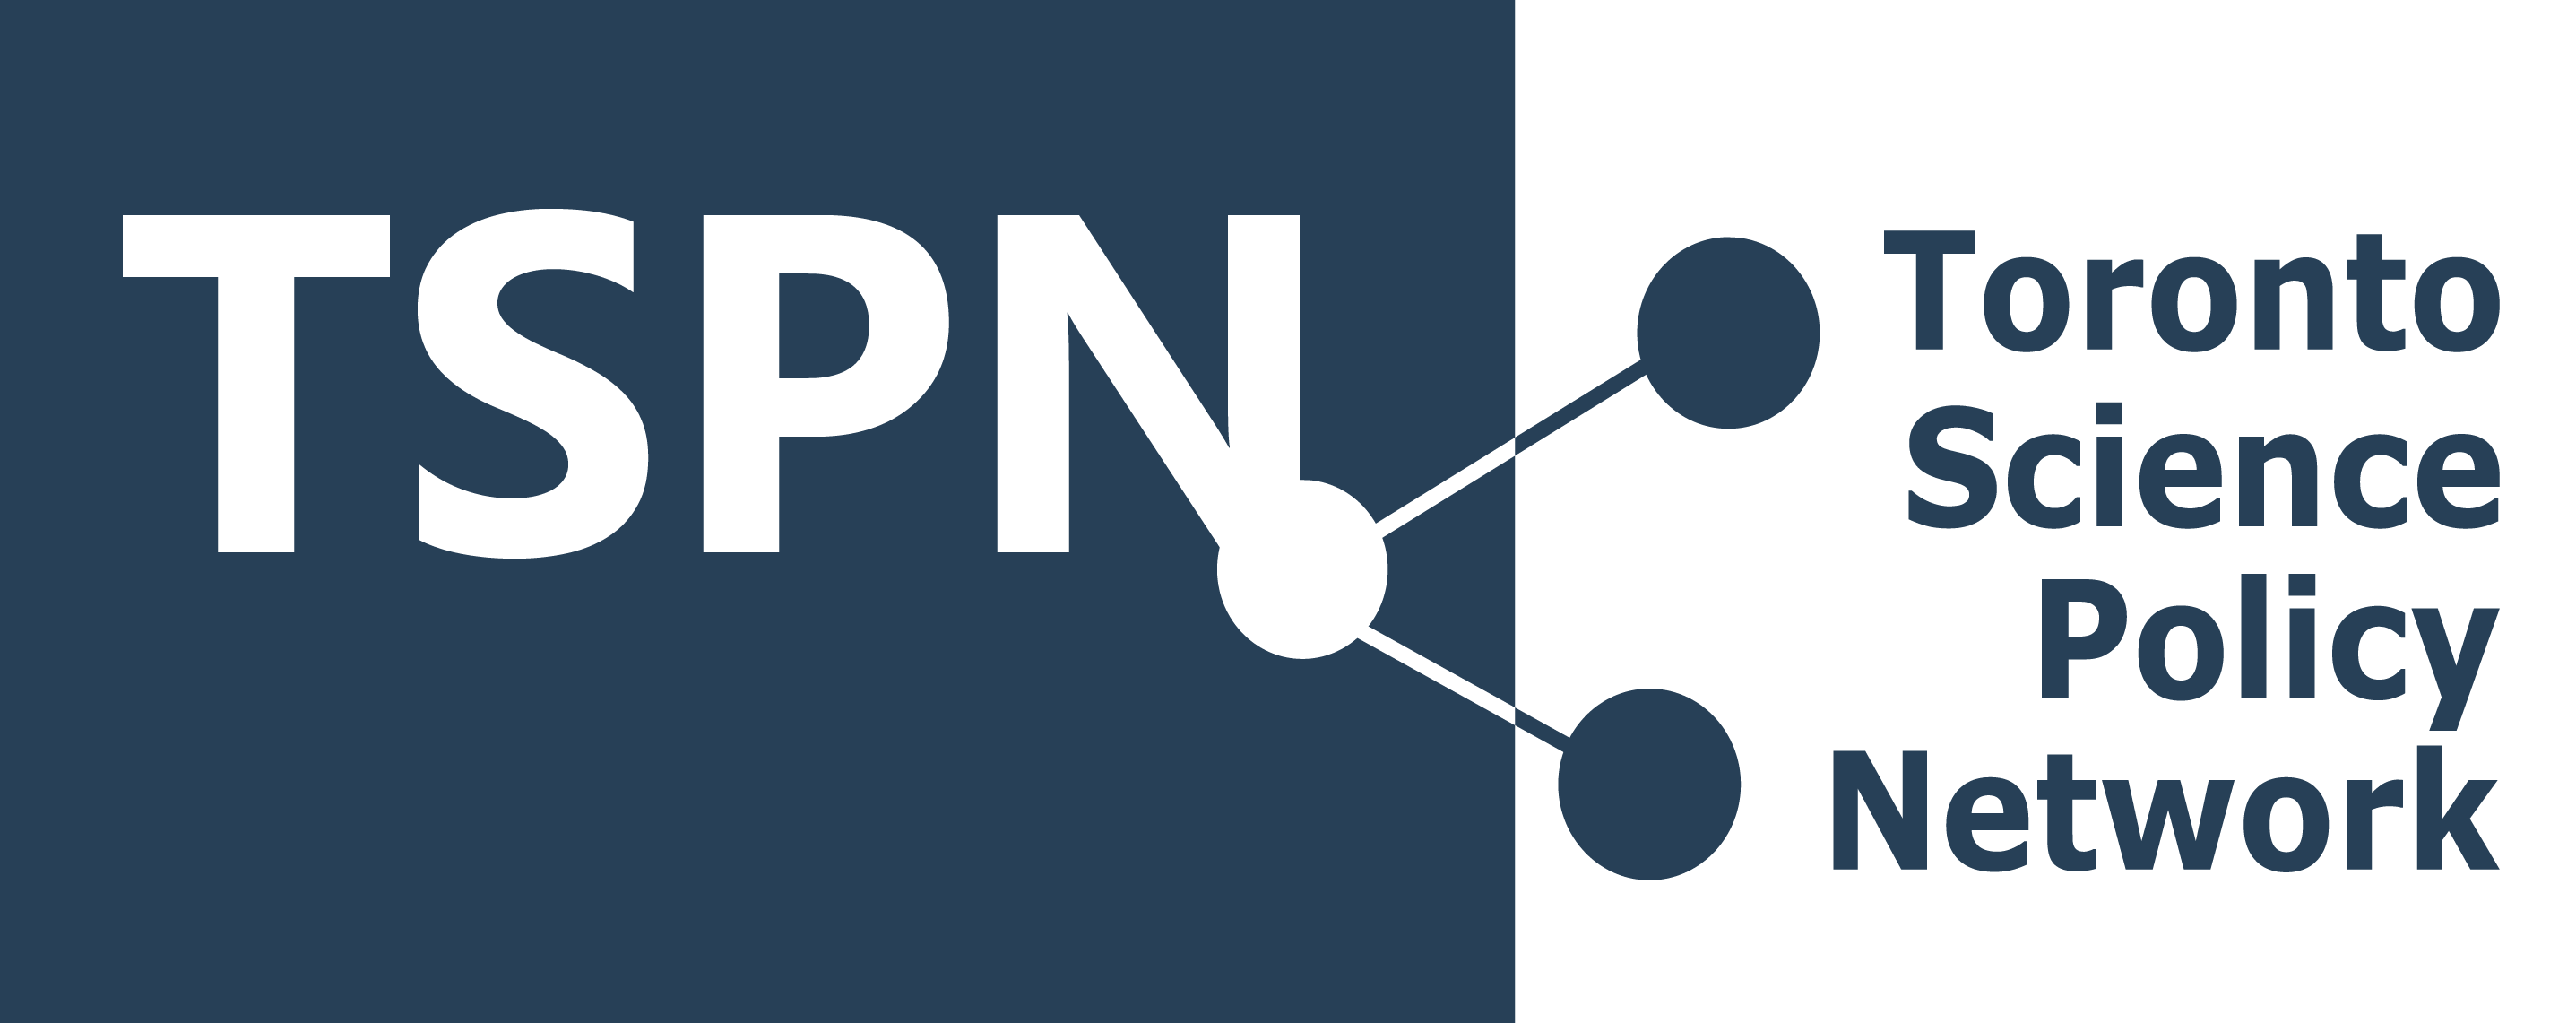 Toronto Science Policy Network